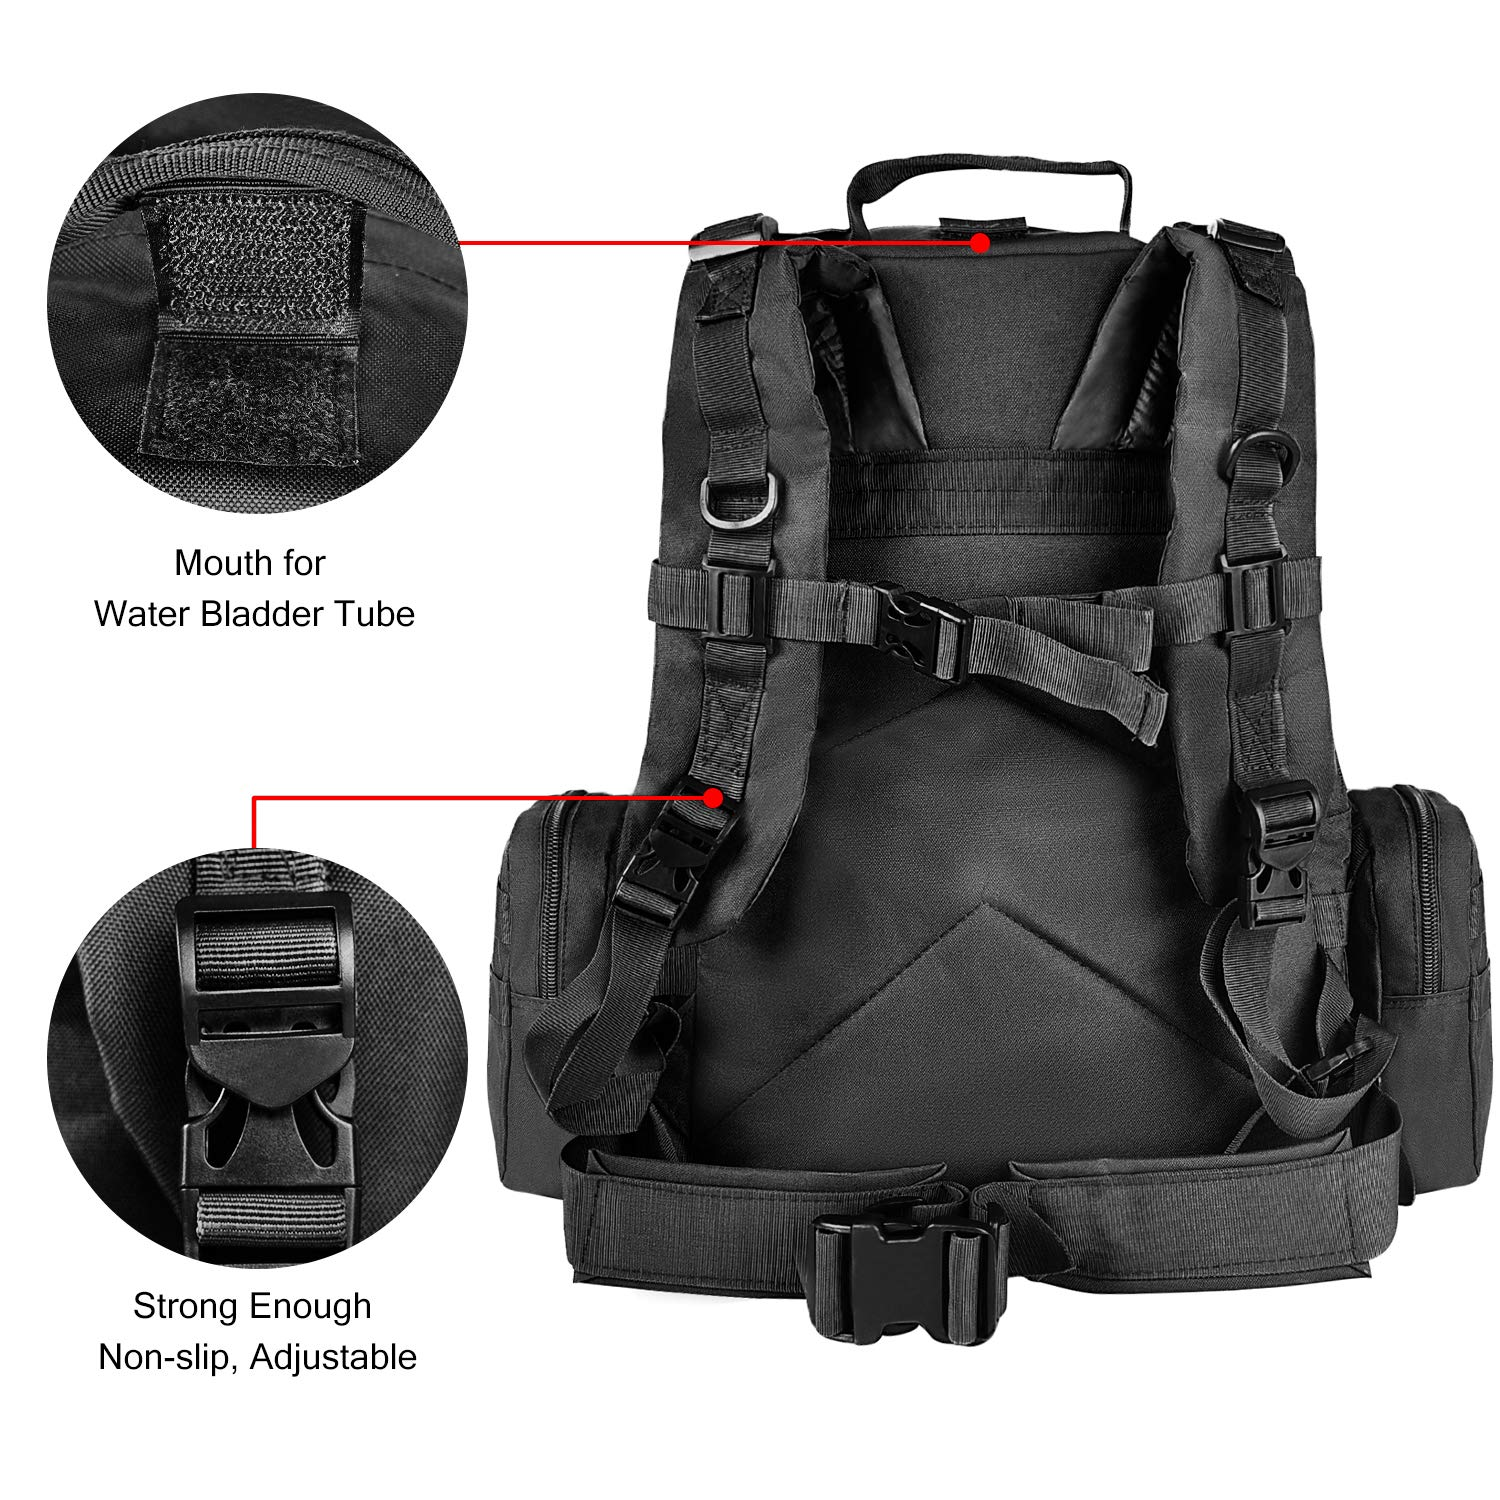 CVLIFE Tactical Military Backpack 60L Built-up Army Rucksacks Outdoor 3 Day Assault Pack Combat Molle Backpack for Hunting Hiking Fishing with Flag Patch Black by CVLIFE (Image #8)